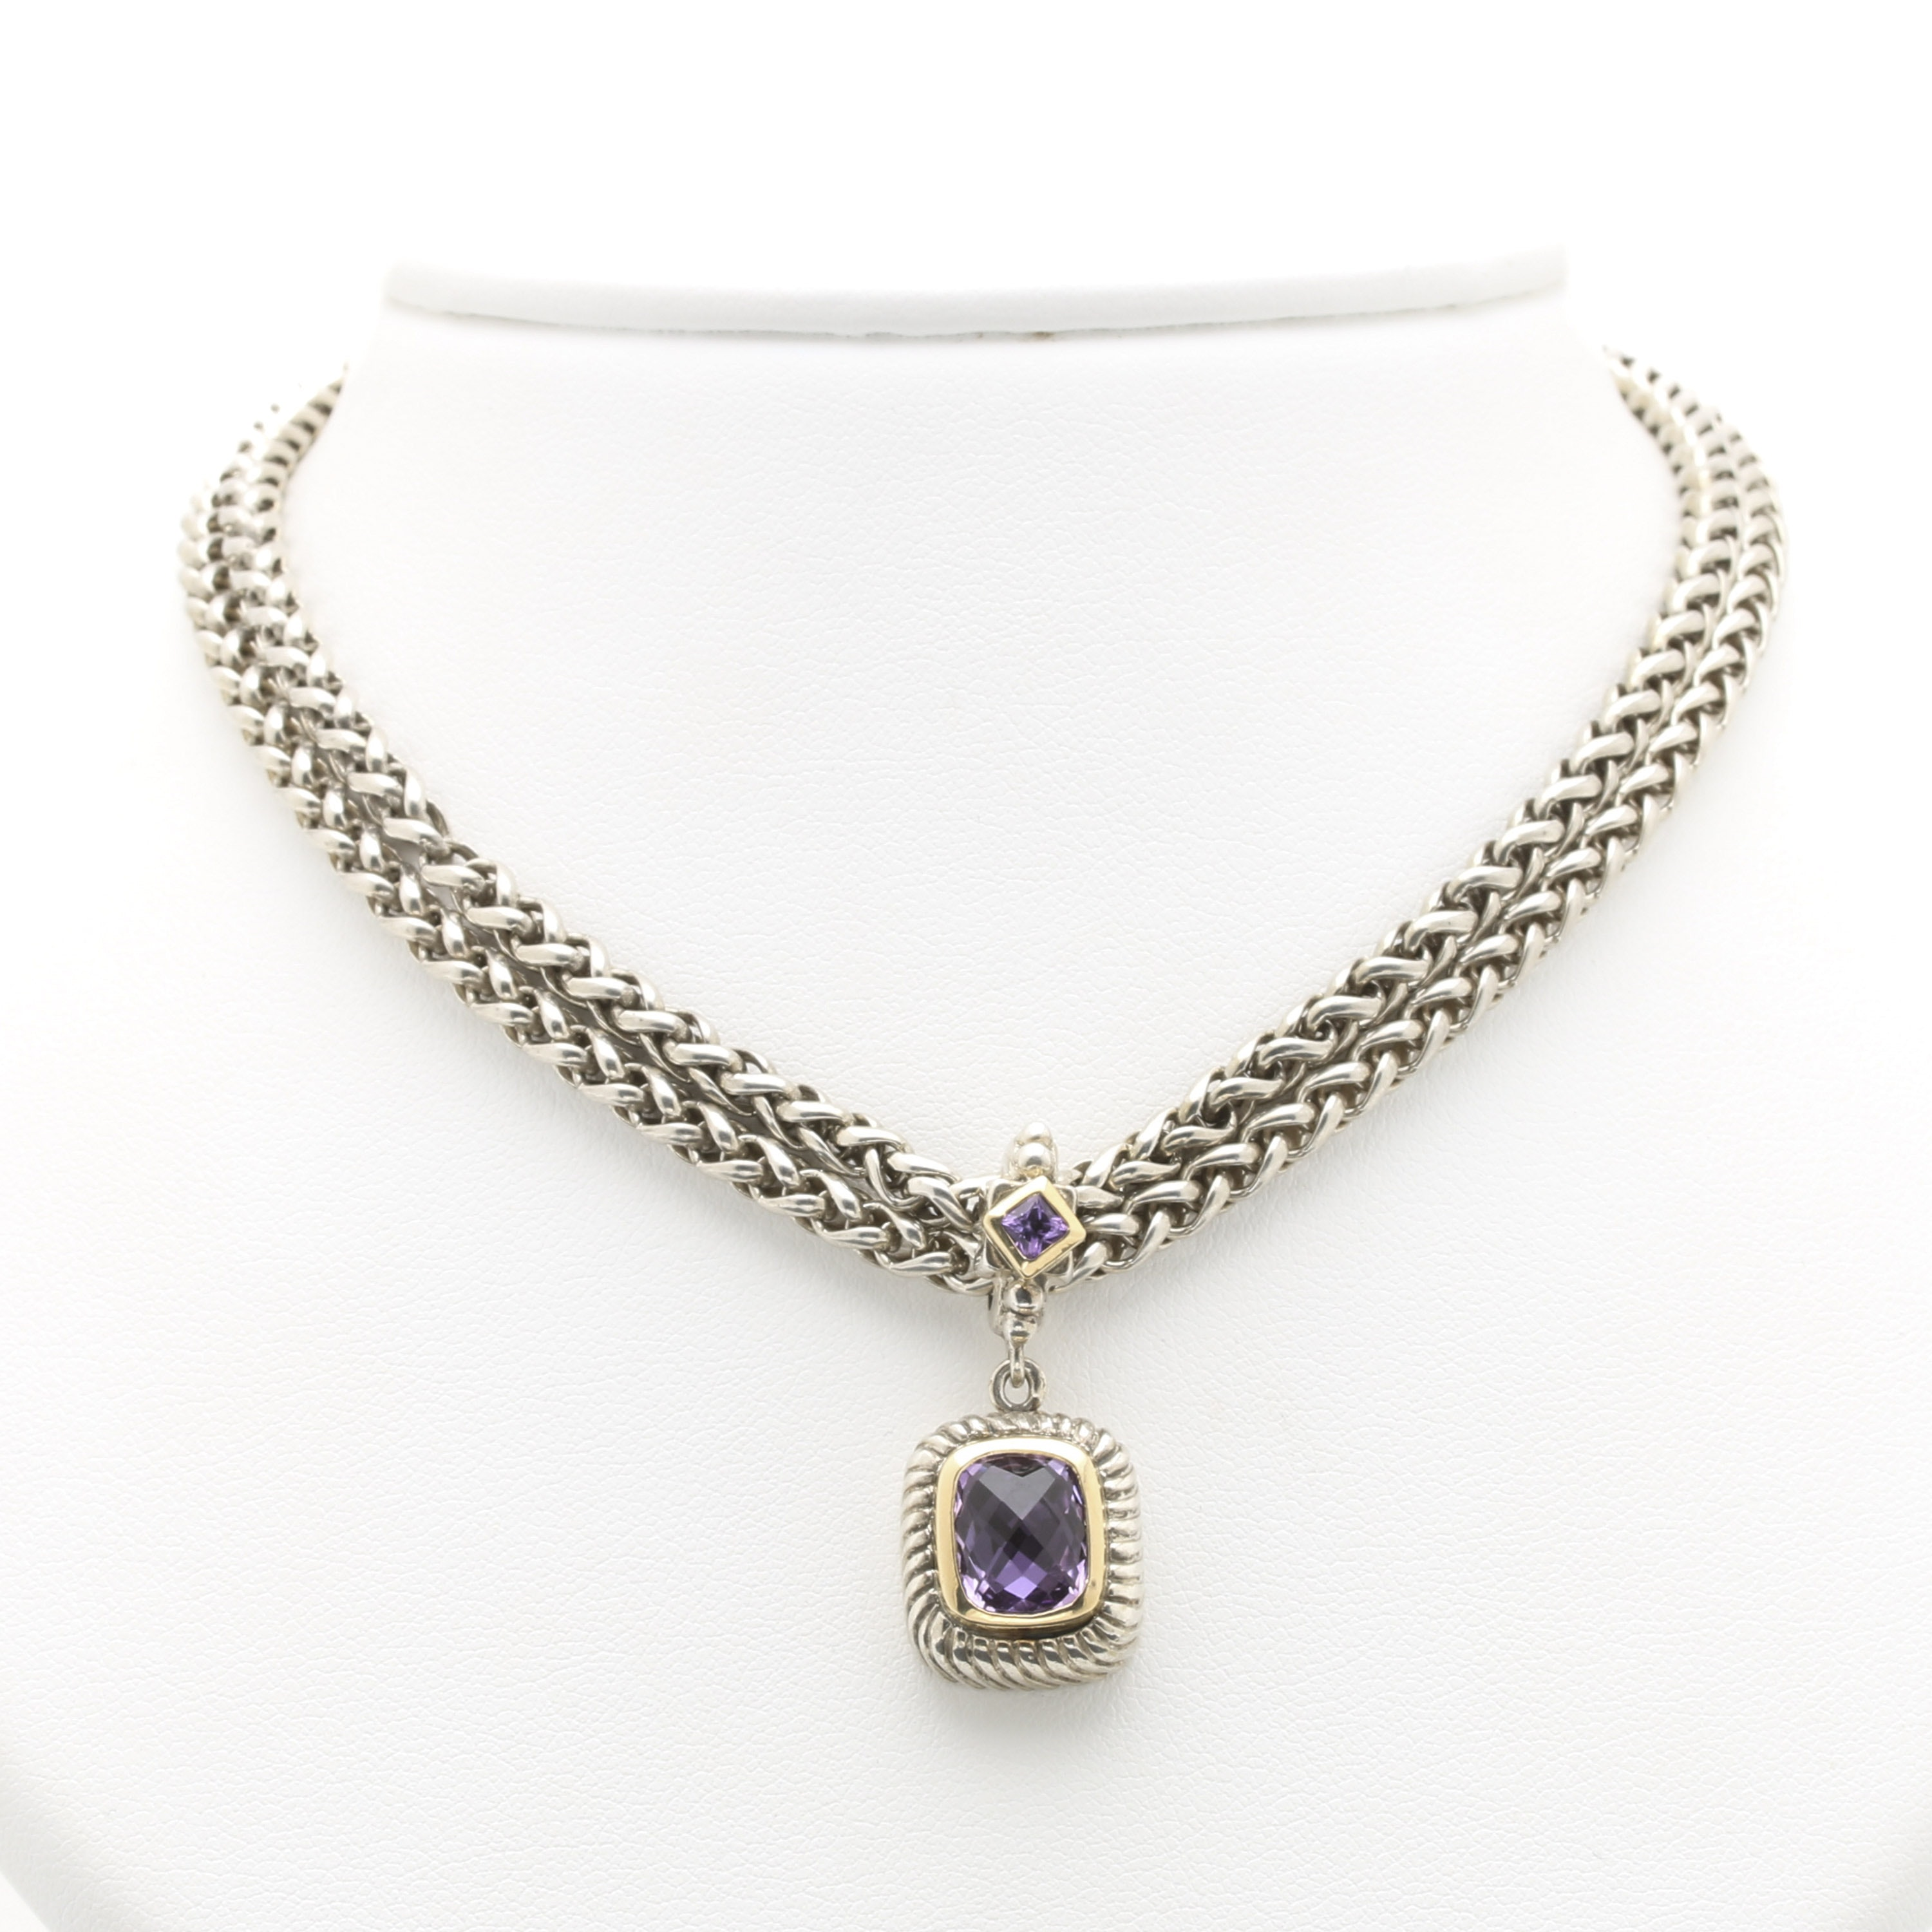 Flli Menegatti Sterling Silver Amethyst Necklace With 18K Yellow Gold Accents